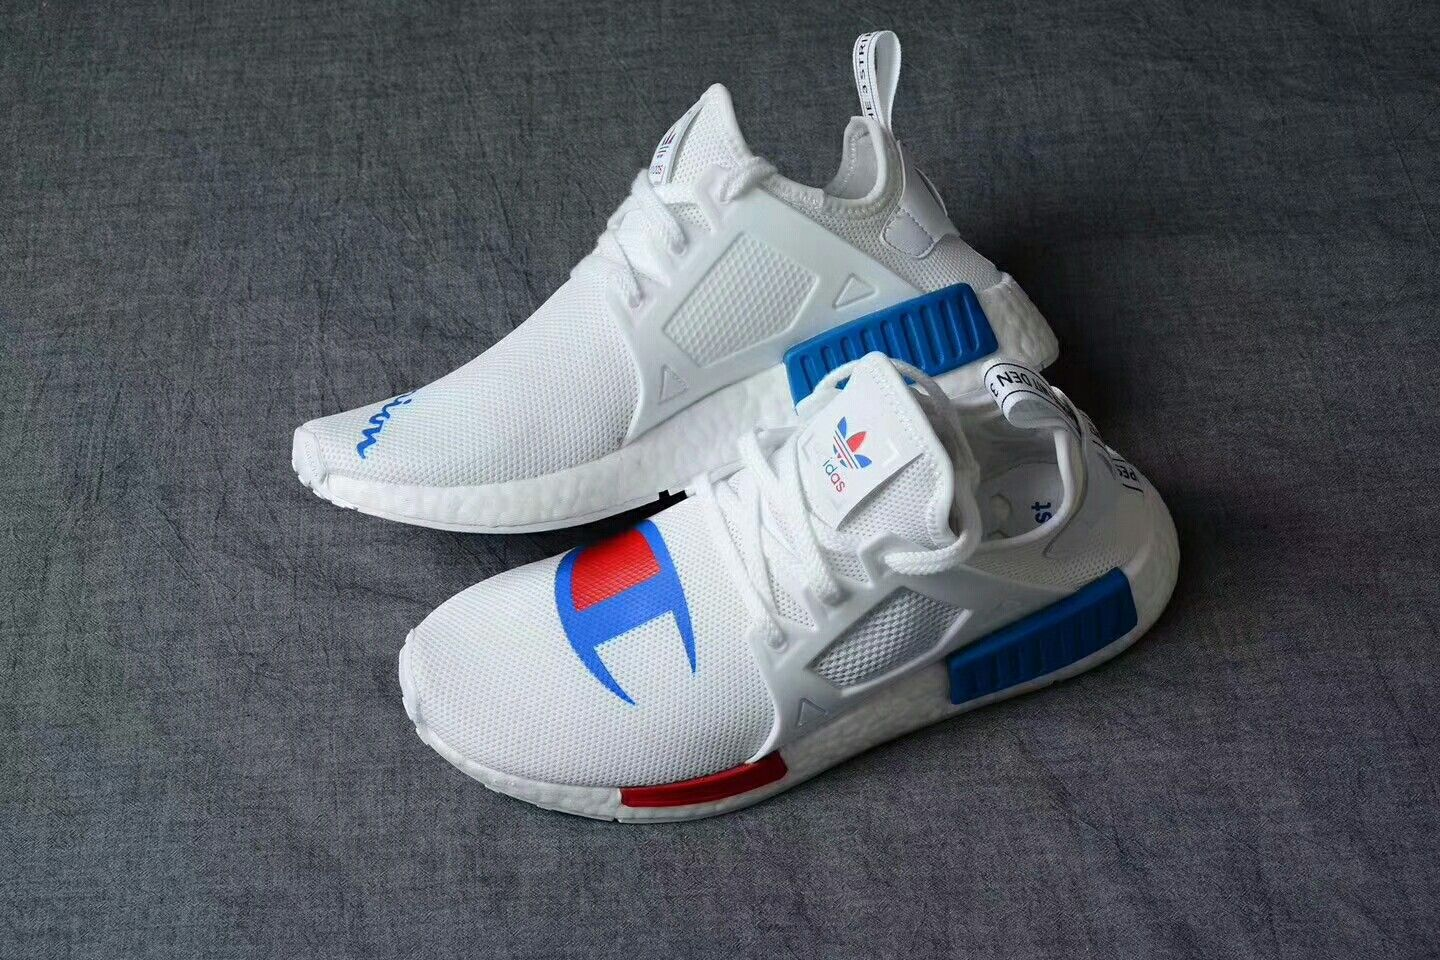 quality design ba8fc f4e0b adidas NMD XR1 x Champion / Size 36 - 45 | Fashion Sneakers